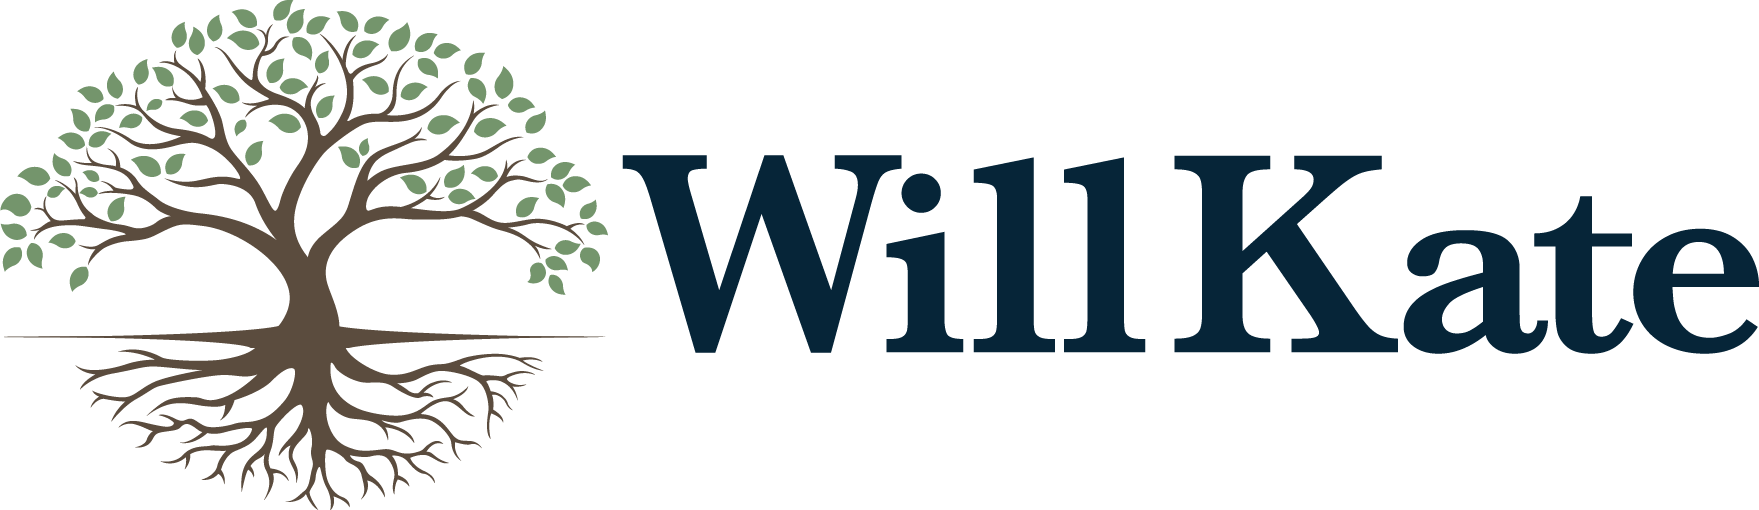 Will Kate horizontal logo